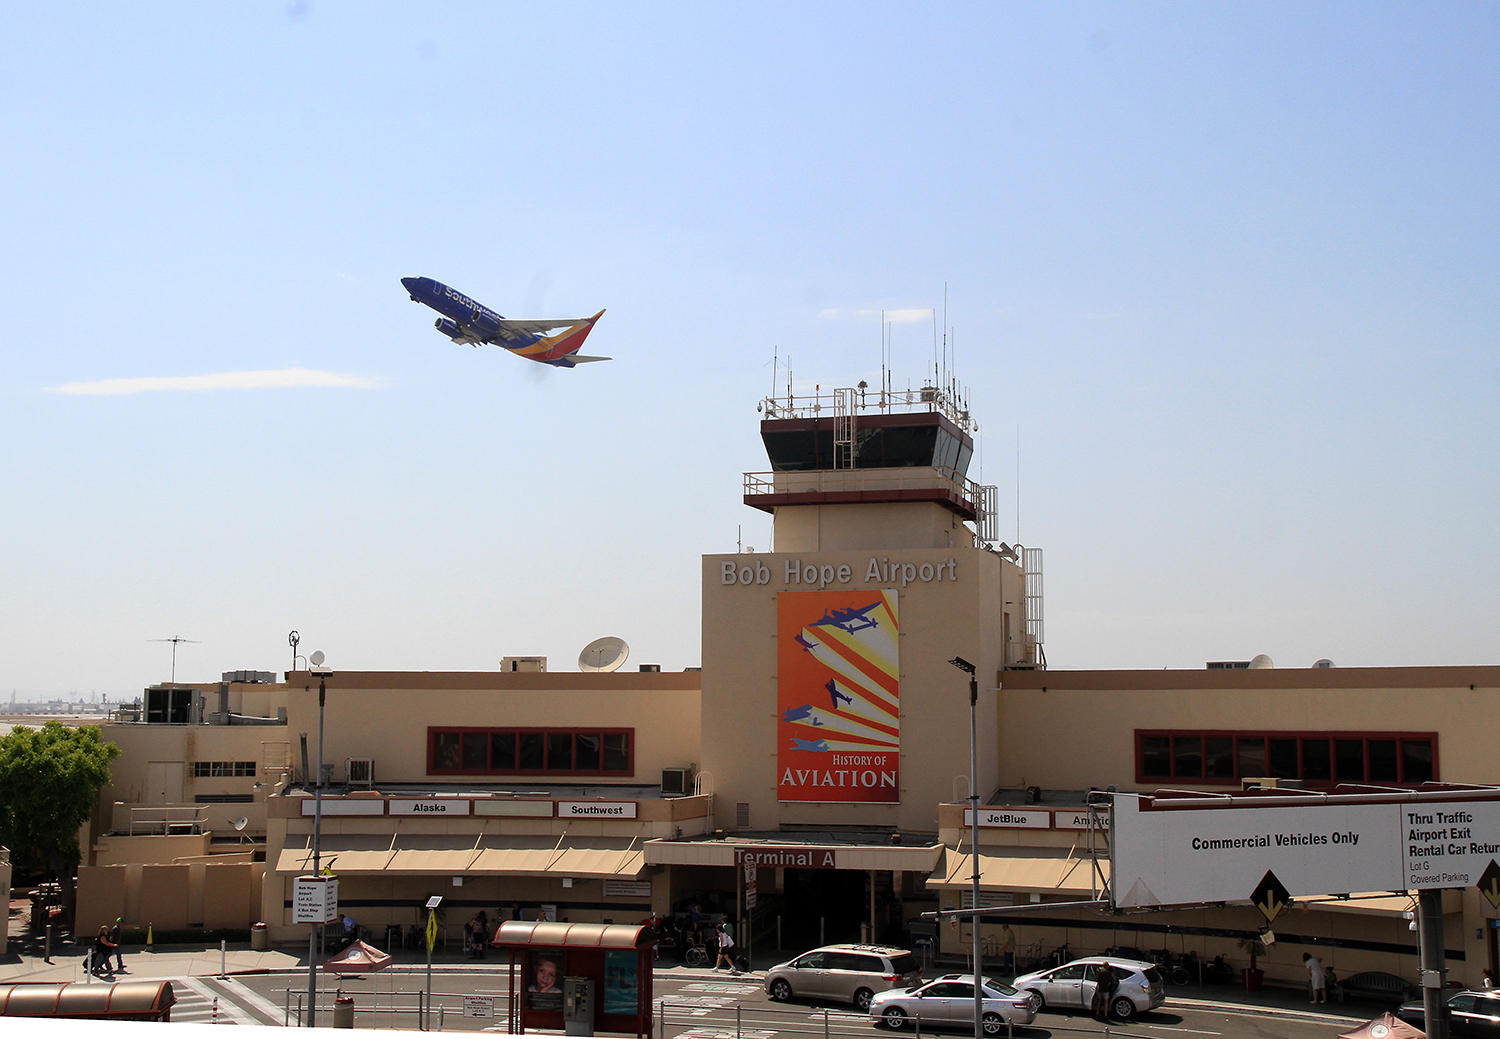 Bob Hope Airport Banner & Display /Photo by Ross A. Benson